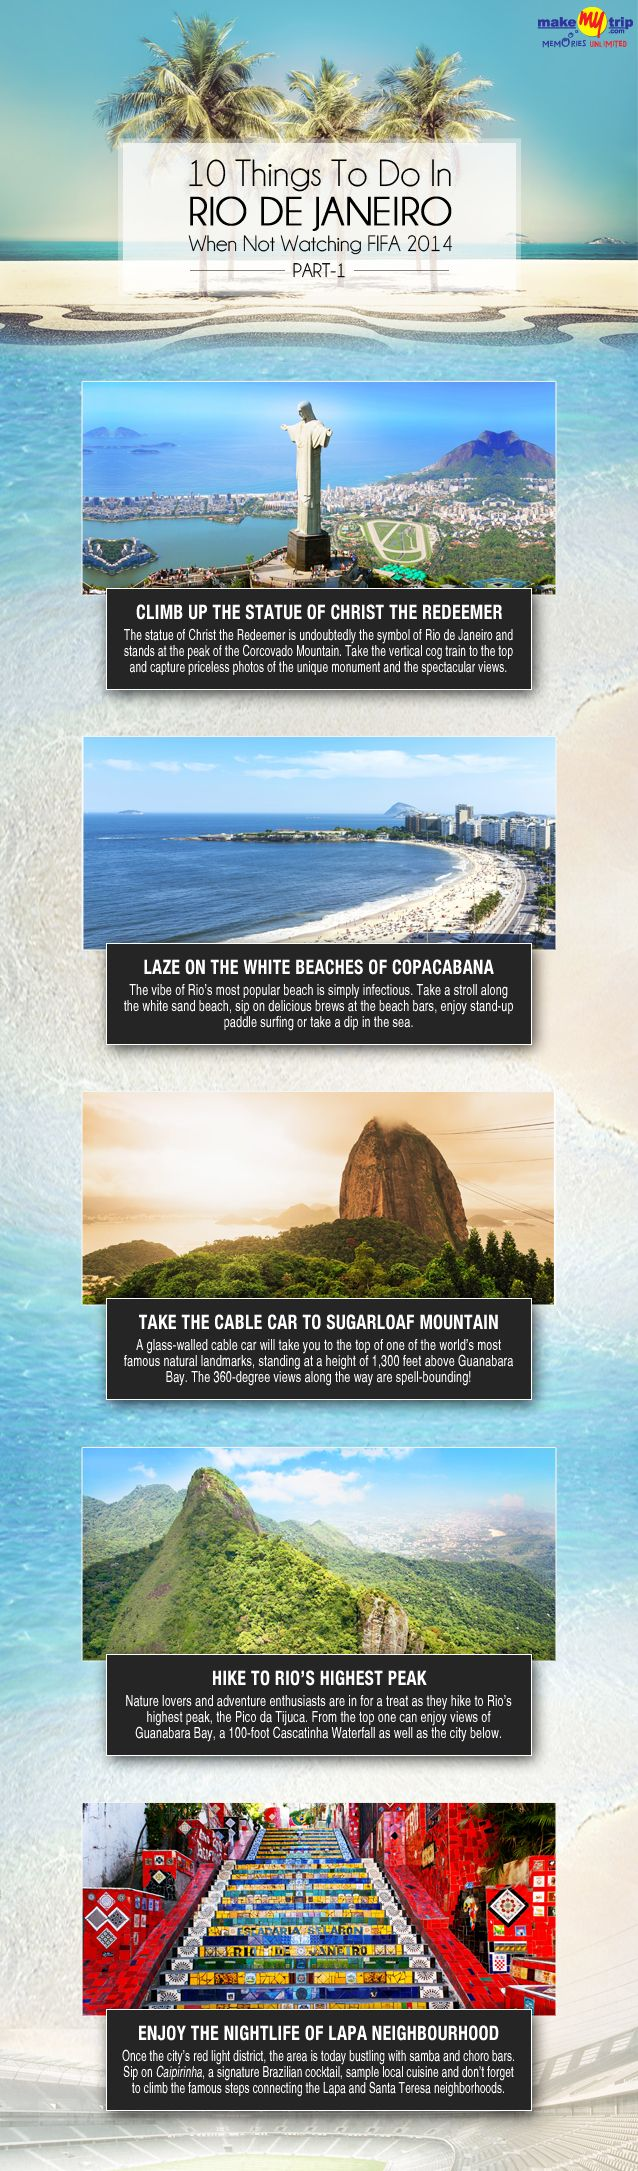 10 Things To Do In Rio de Janeiro, Brazil When Not Watching #FIFA 2014 #travel #infrographic